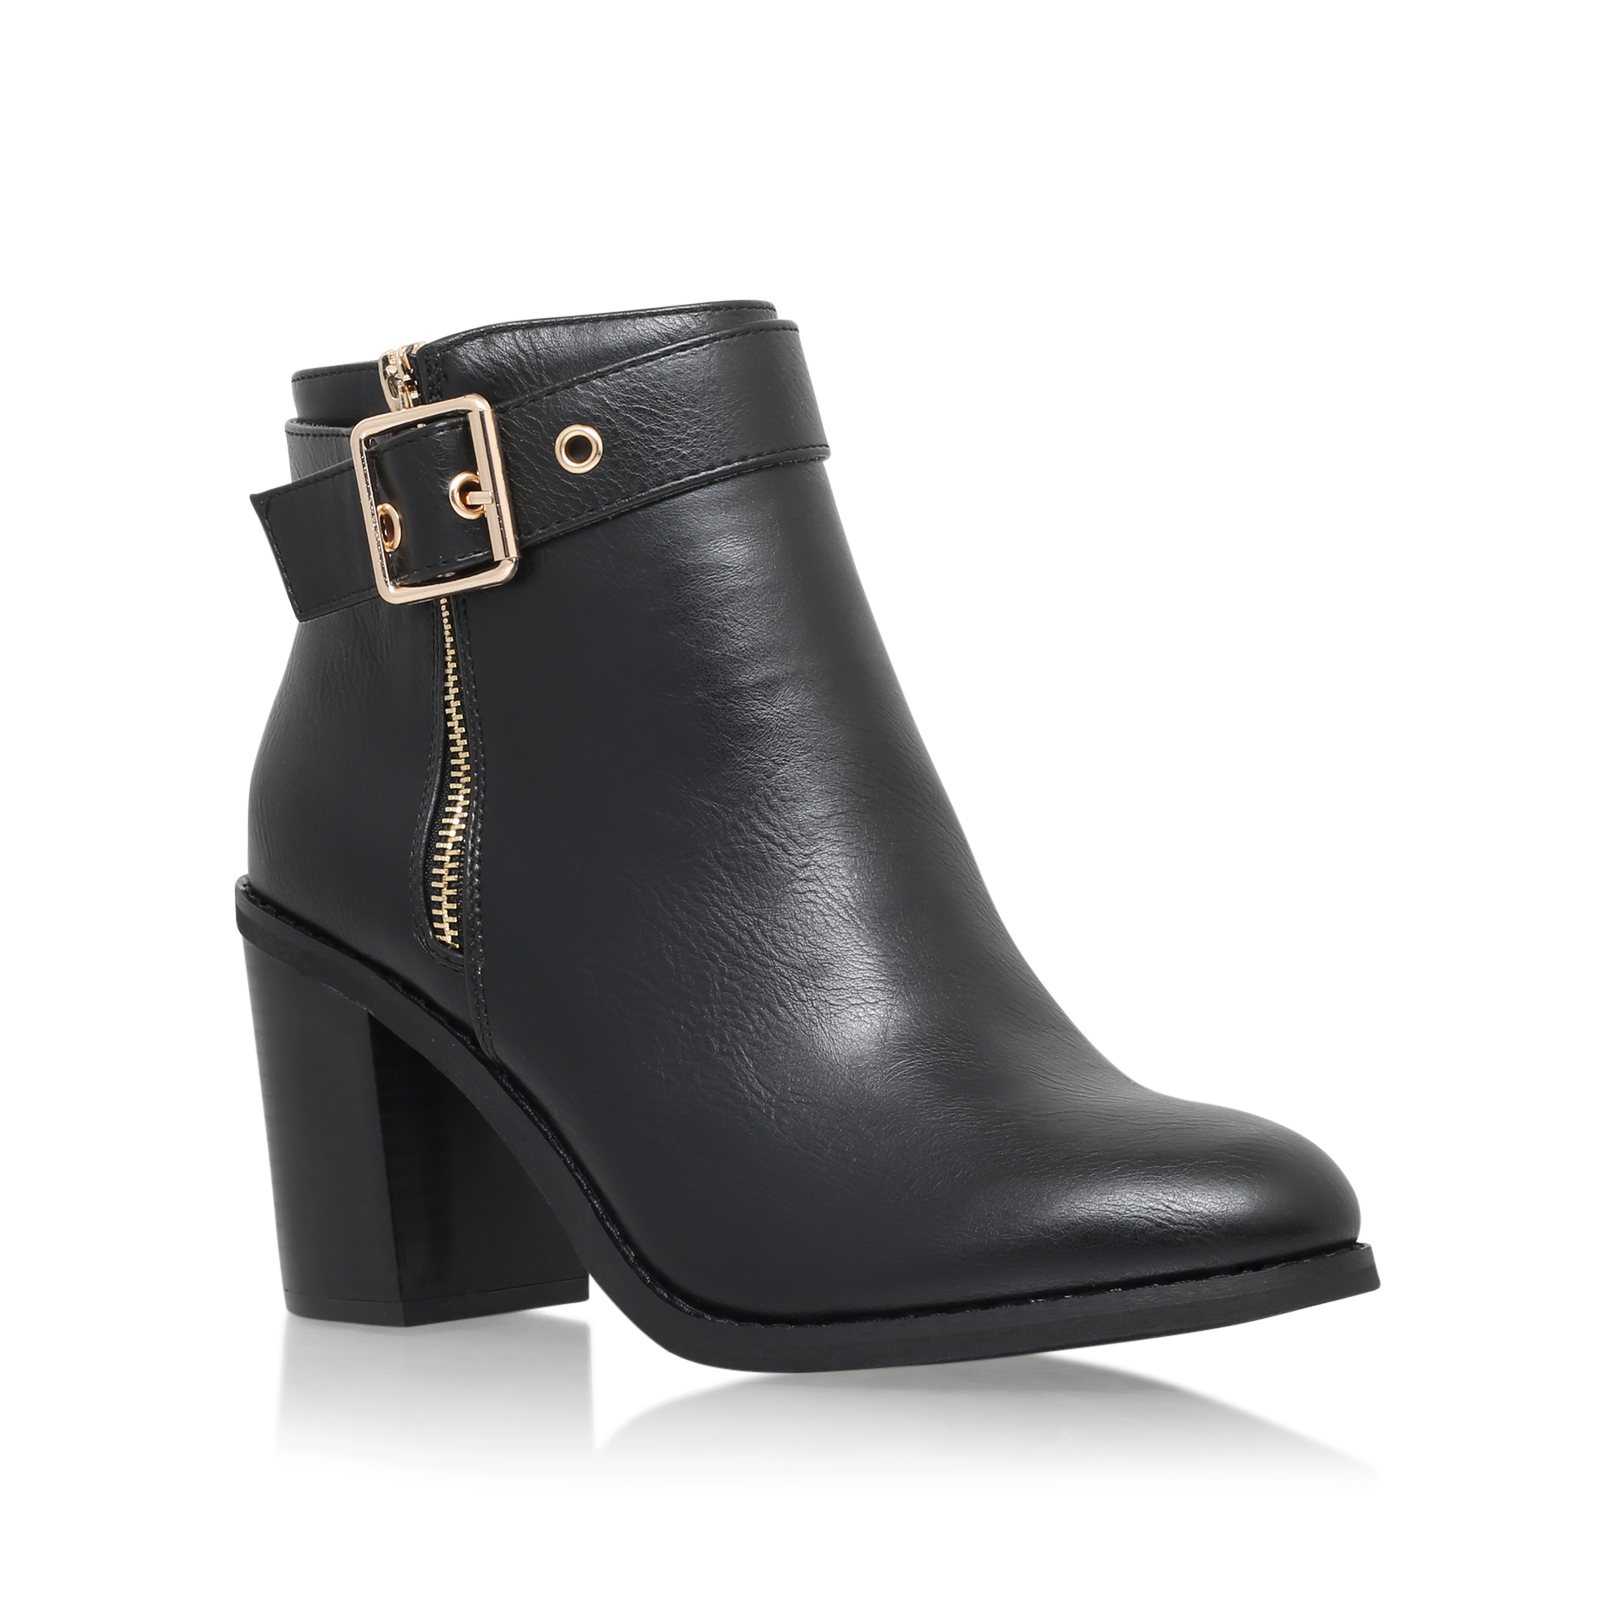 82cad634cce Janelle Mid Heel Ankle Boots | Endource